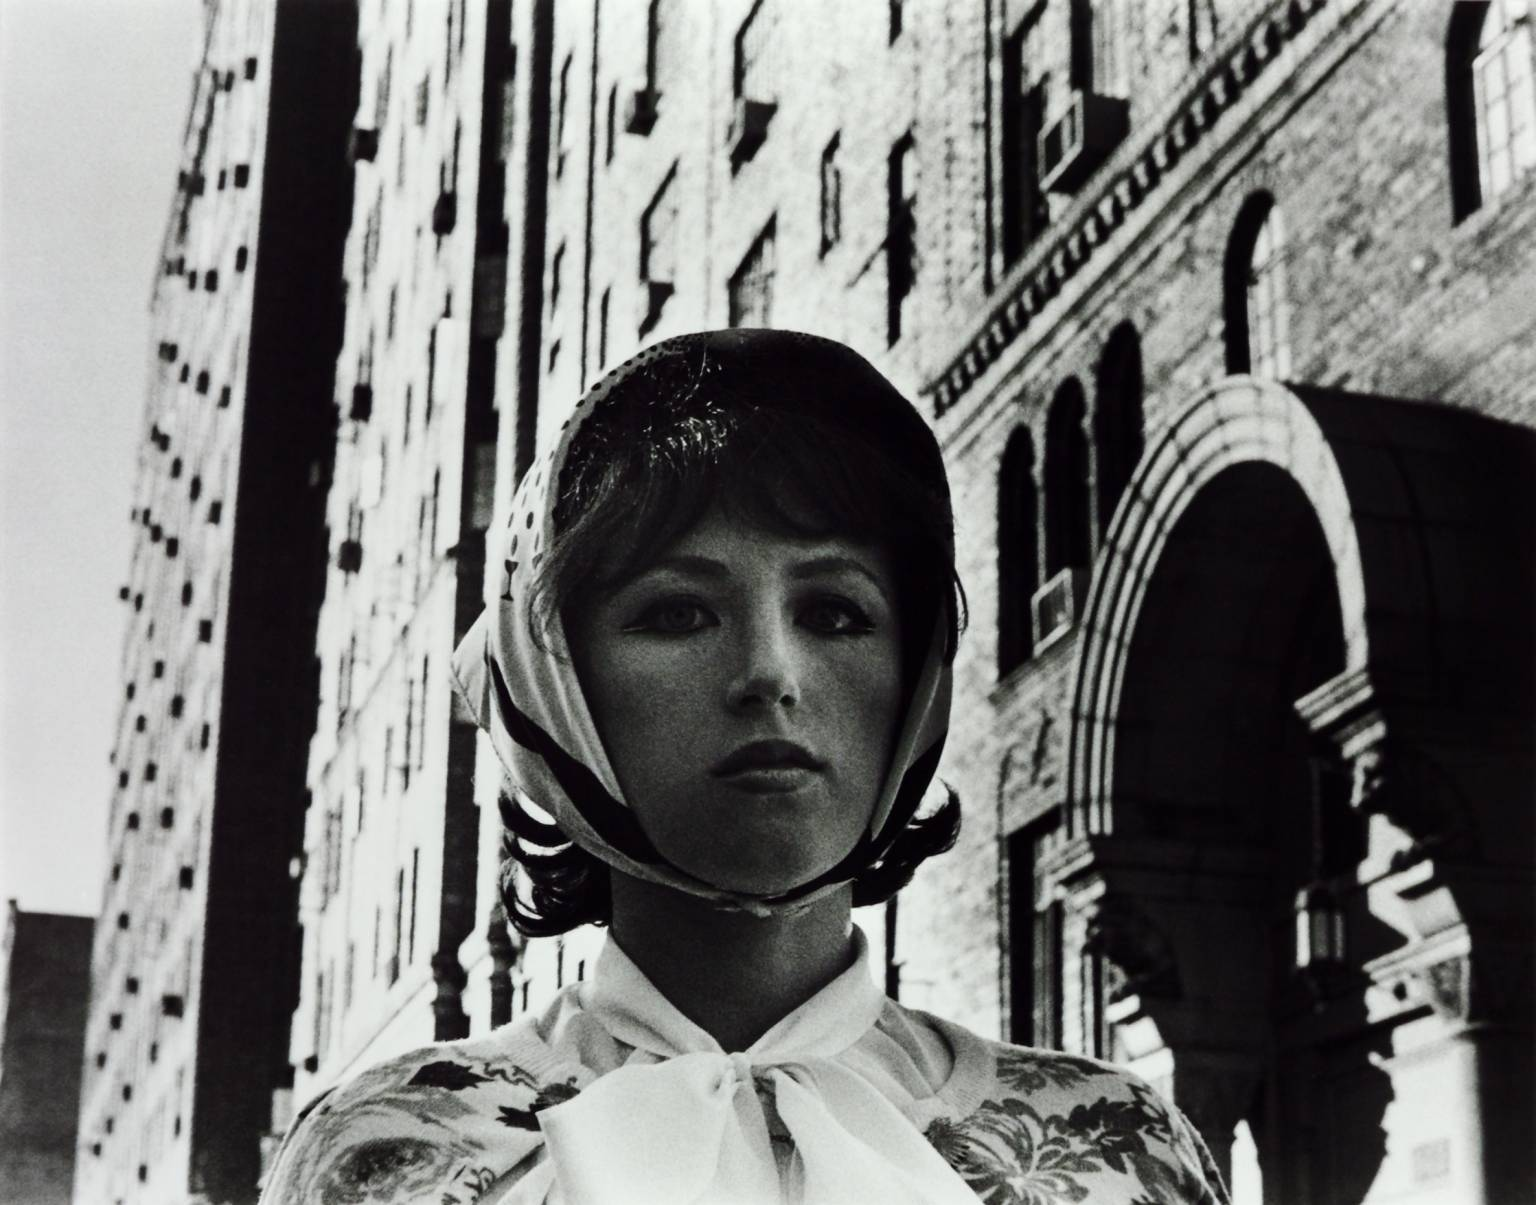 Selfie Art Cindy Sherman Untitled Film Still #17 1978